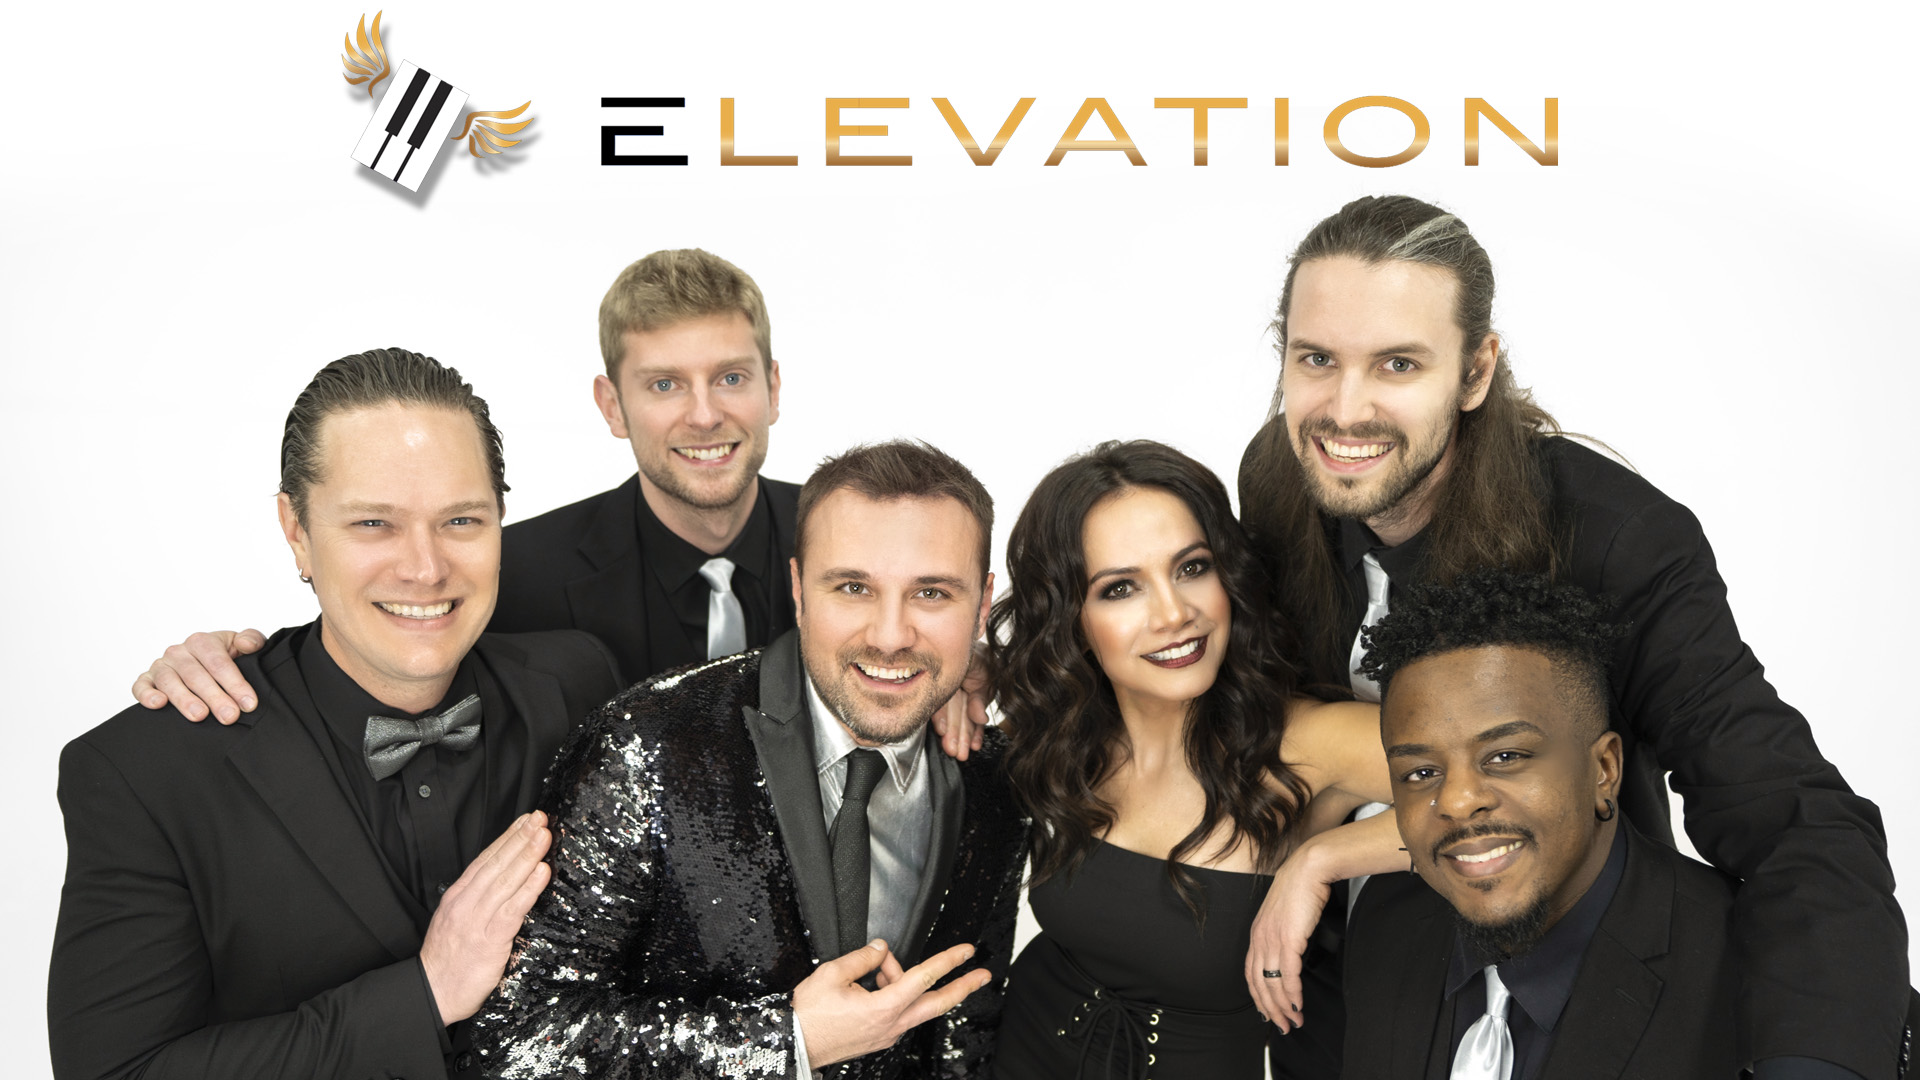 Elevation Band - Dallas TX - one of the best live party bands for weddings and events